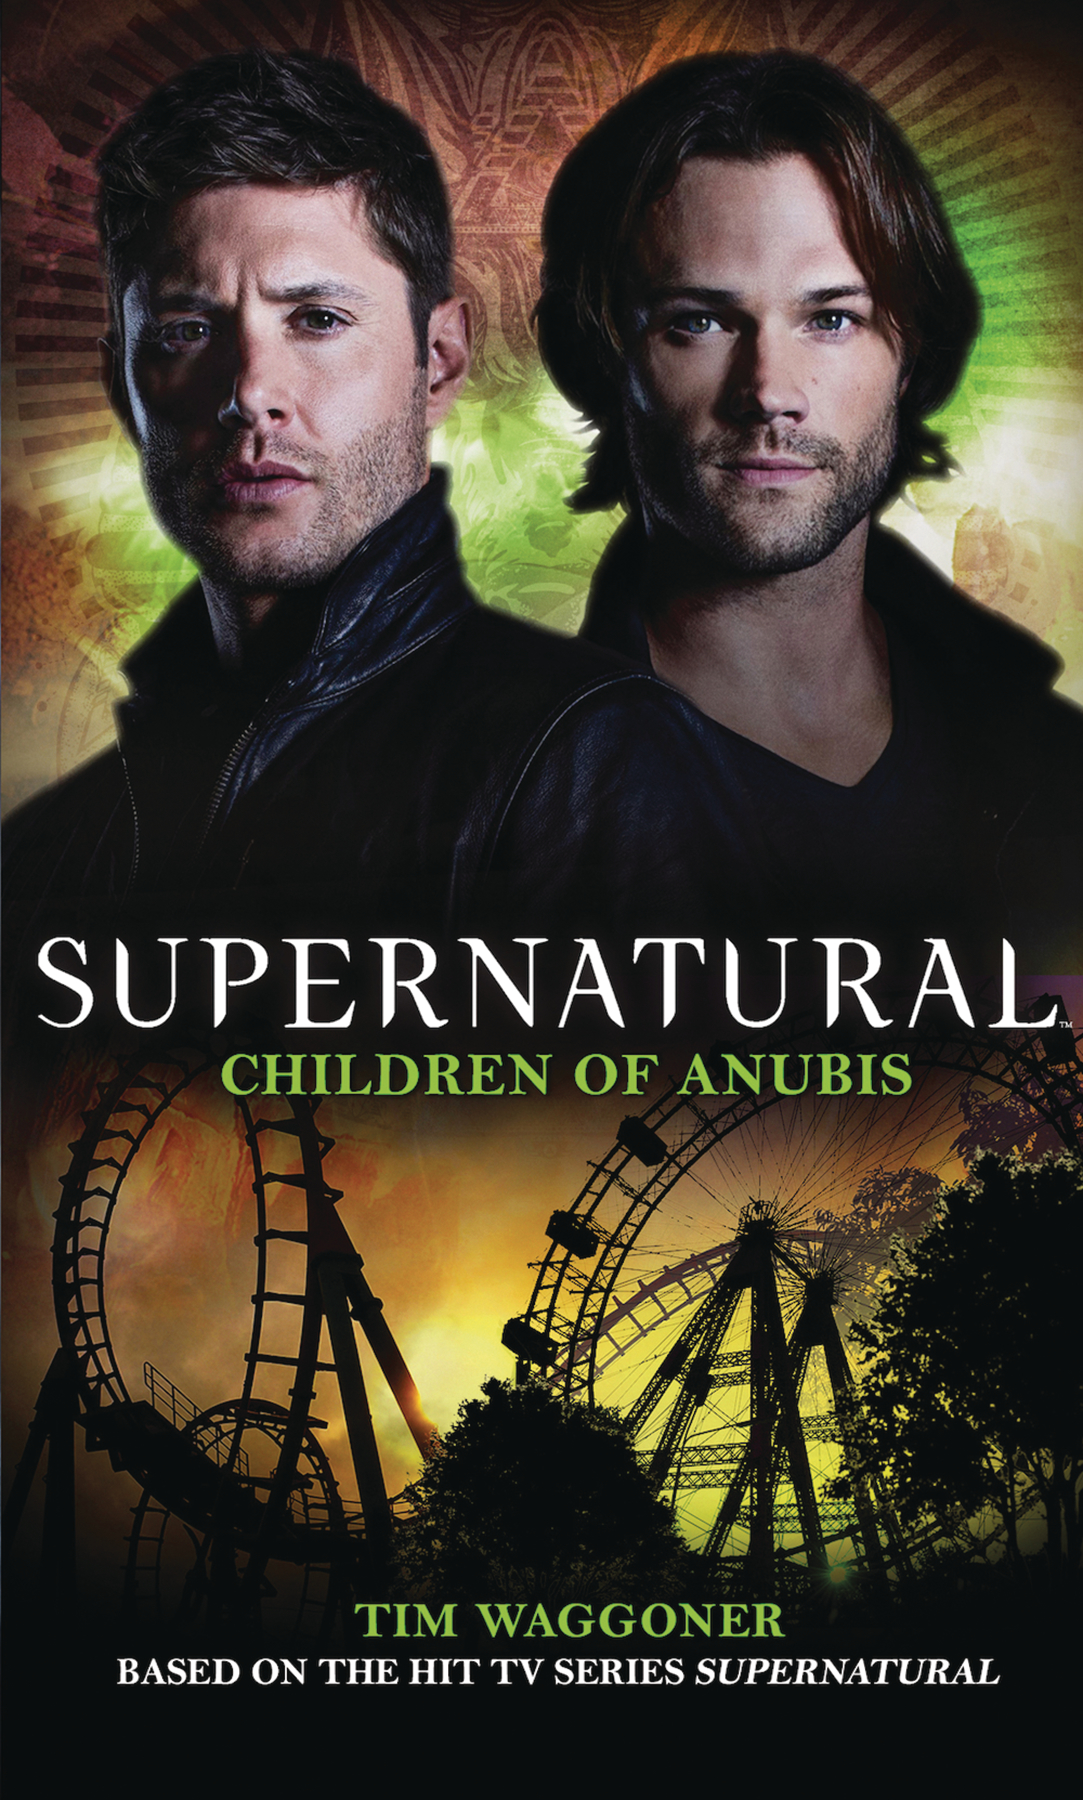 SUPERNATURAL CHILDREN OF ANUBIS MMPB